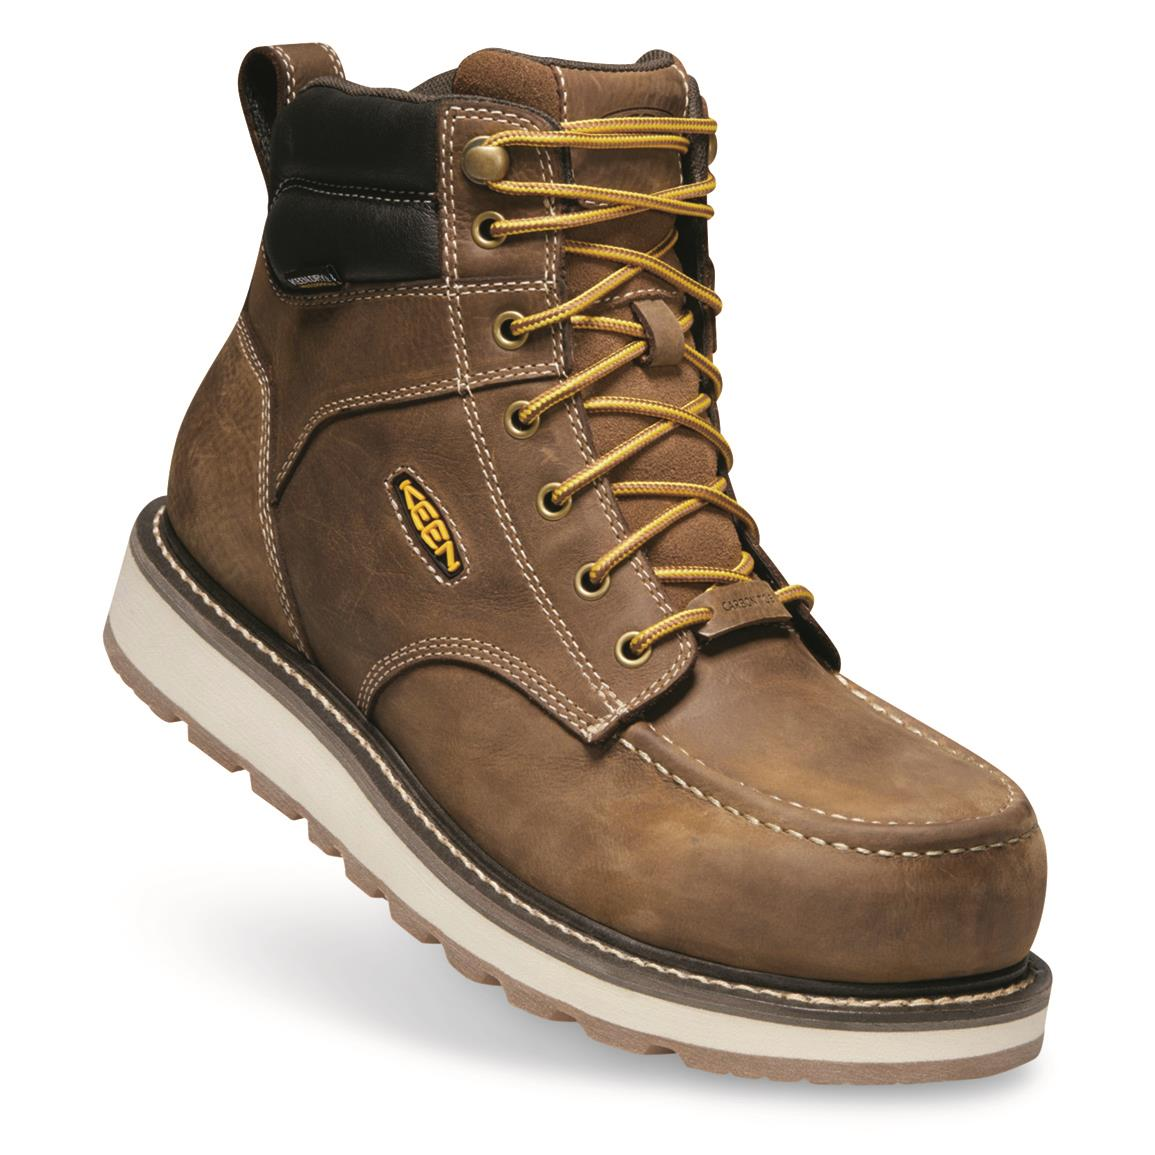 KEEN Utility Men's Cincinnati Waterproof Composite Toe Work Boots, Belgian/sands Hell